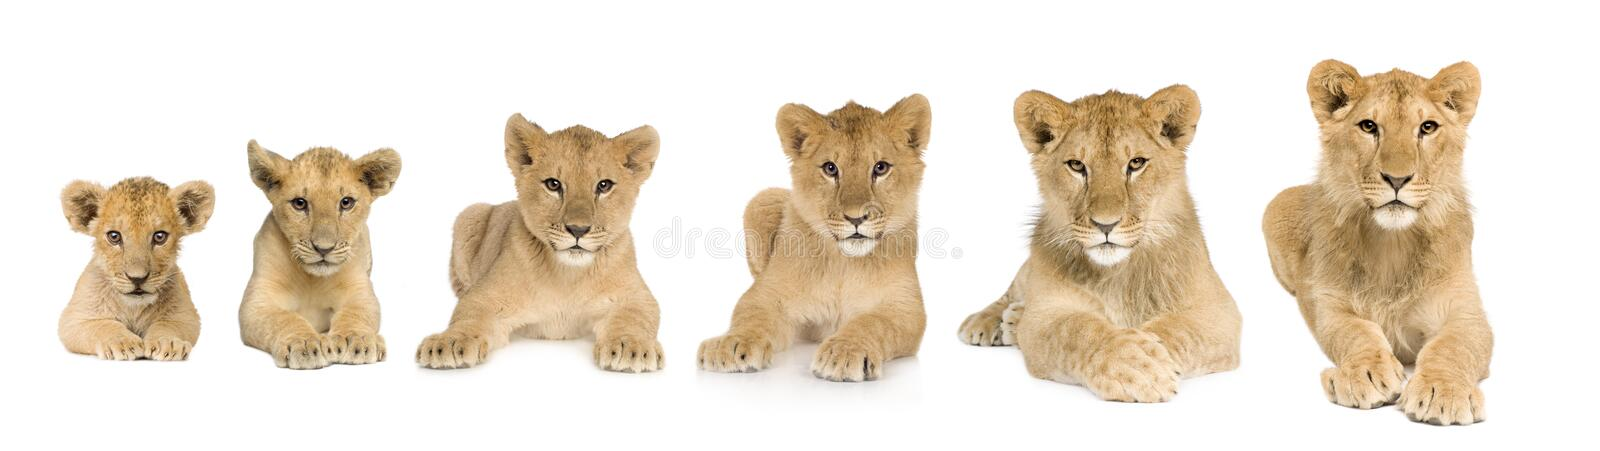 Download Lion Cub Growing From 3 To 9 Months In Front Of A Stock Illustration - Image: 5876599